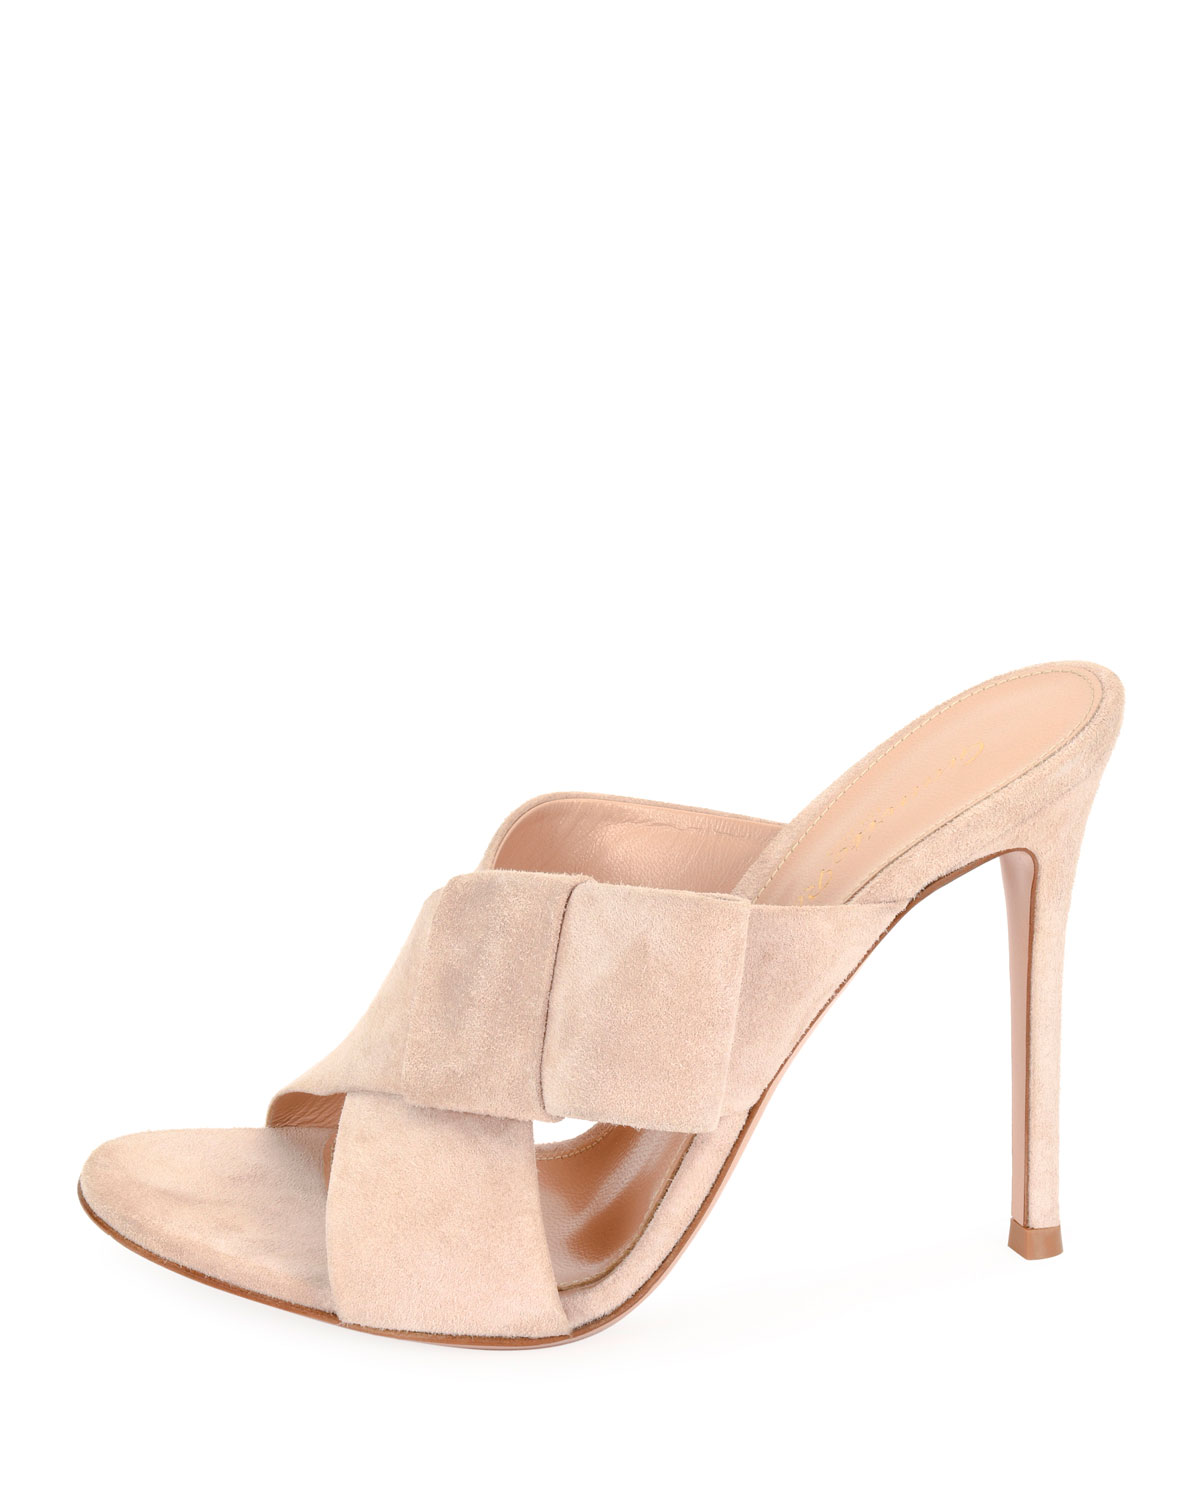 Gianvito Rossi Crisscross Suede 105mm Mule 3Mx5Kt